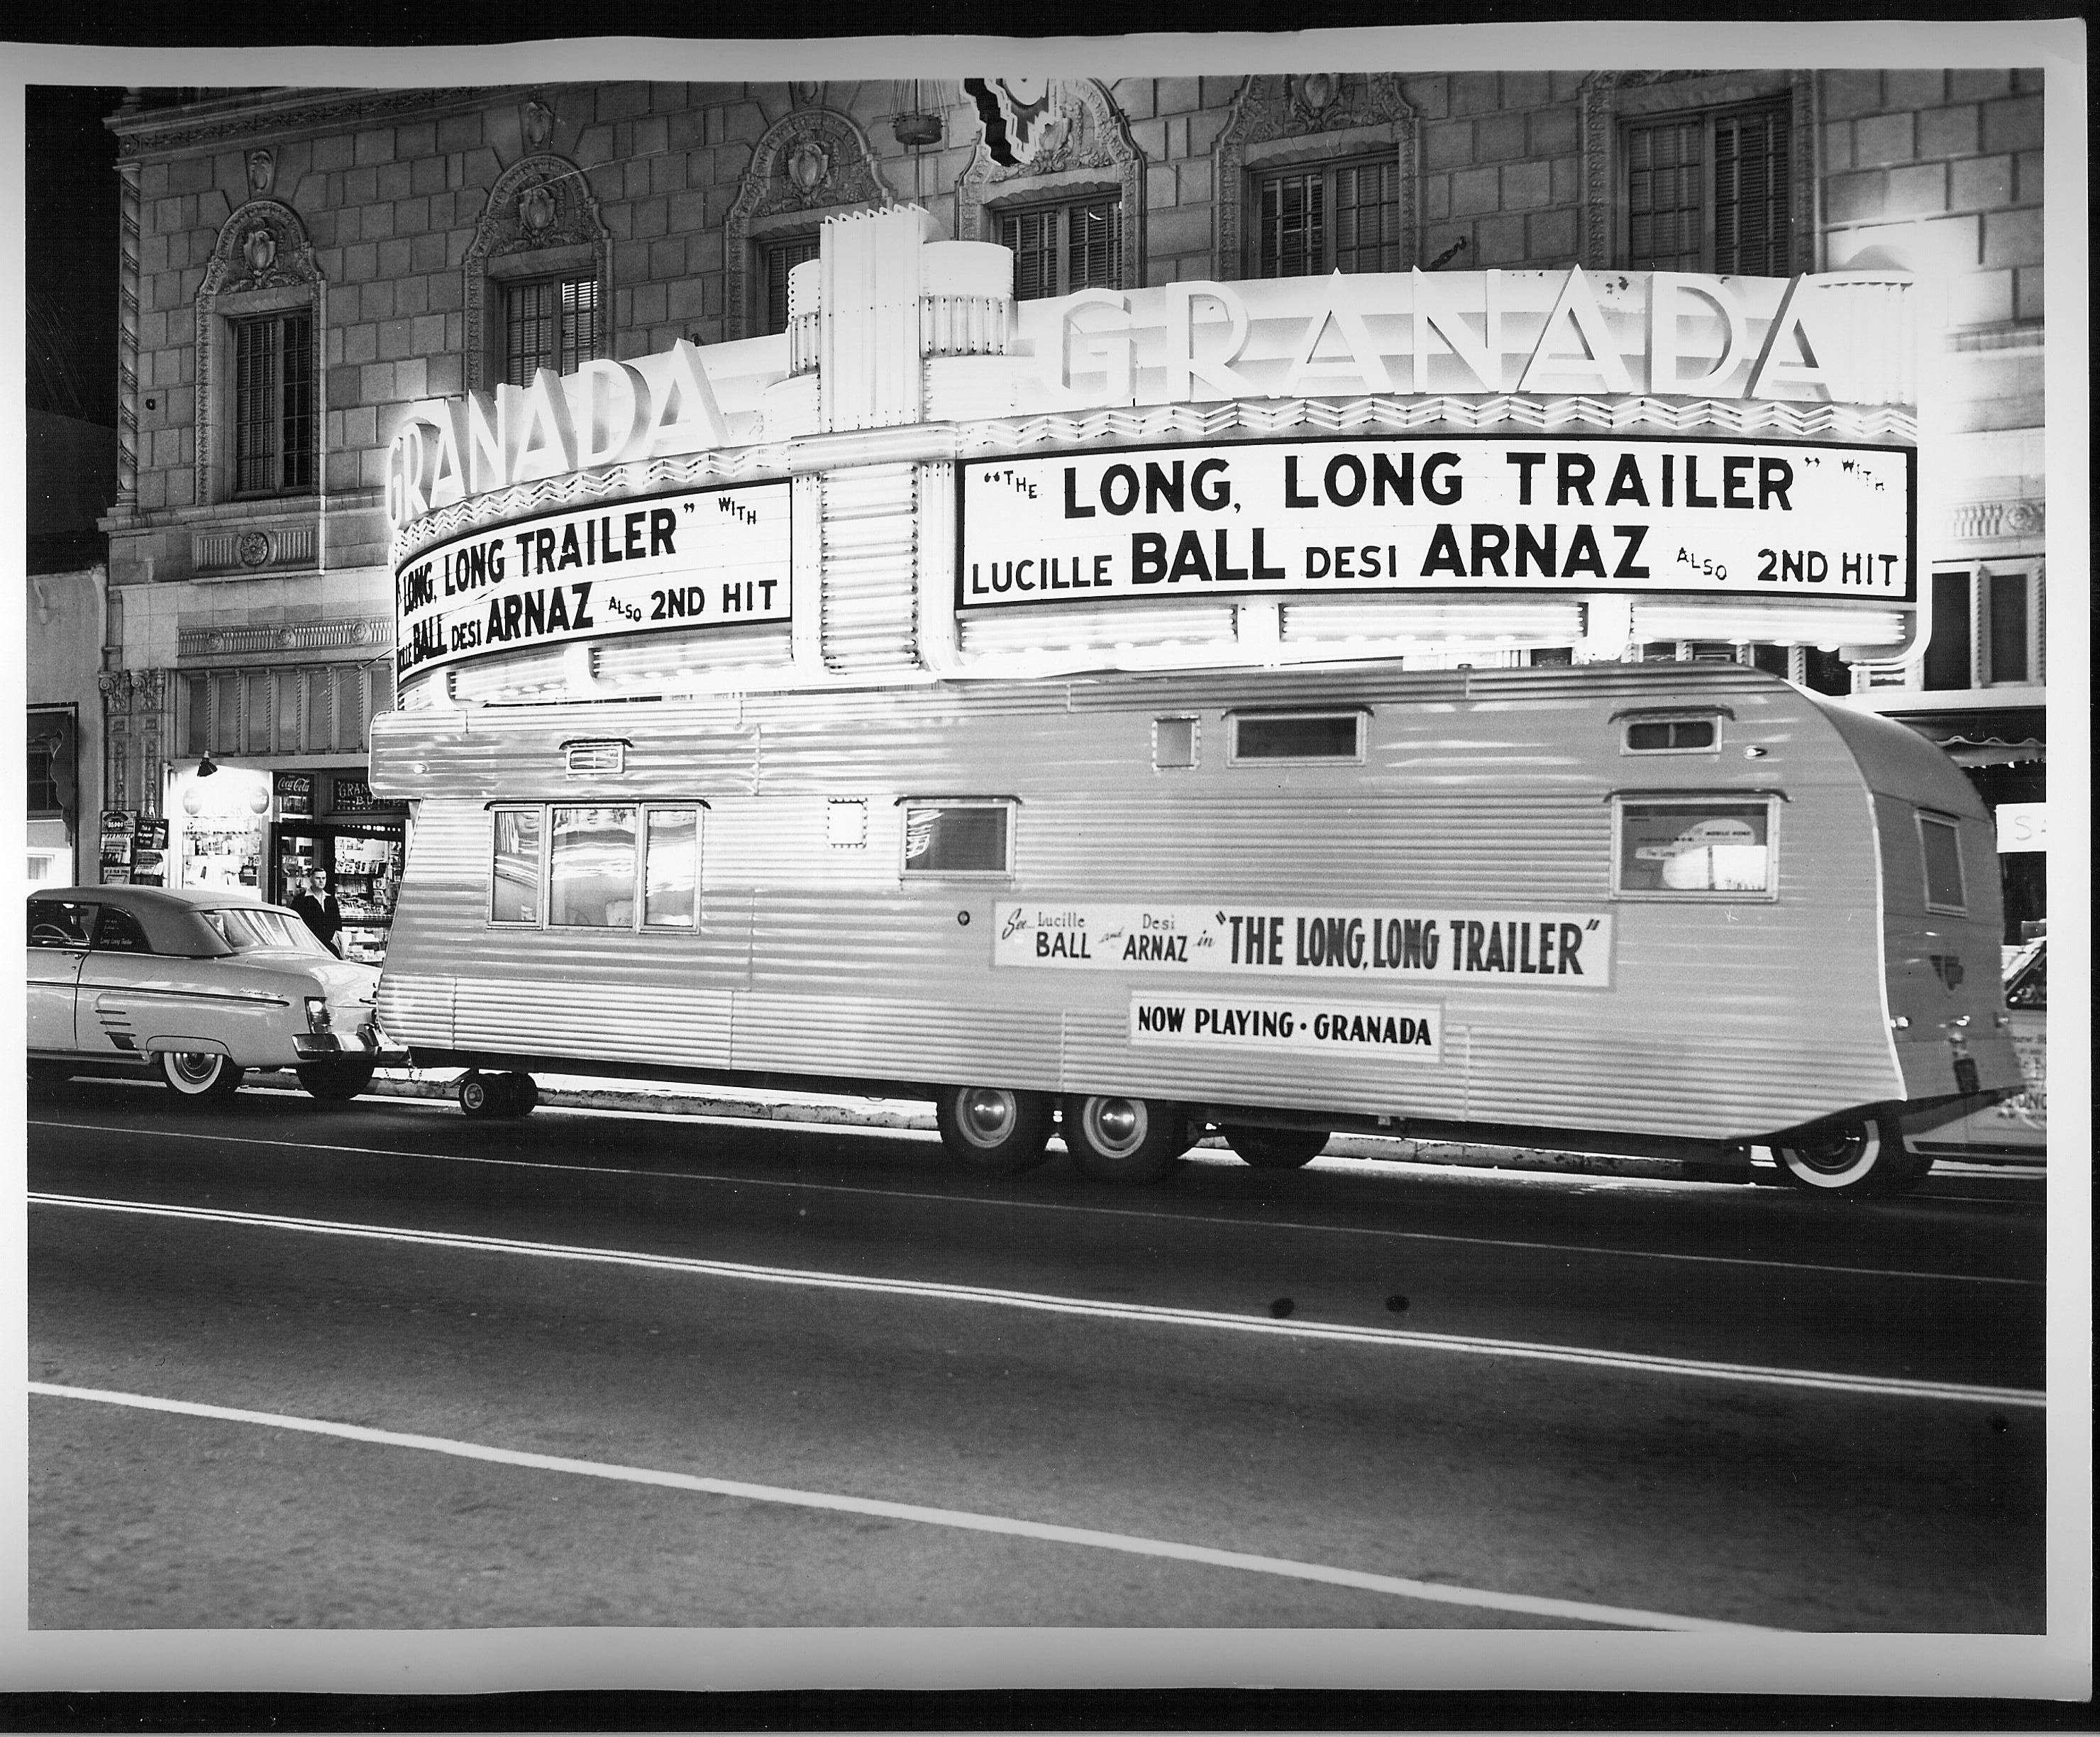 The Long, Long Trailer.  This is the movie that sparked my love for vintage travel trailers.....'ditto'!